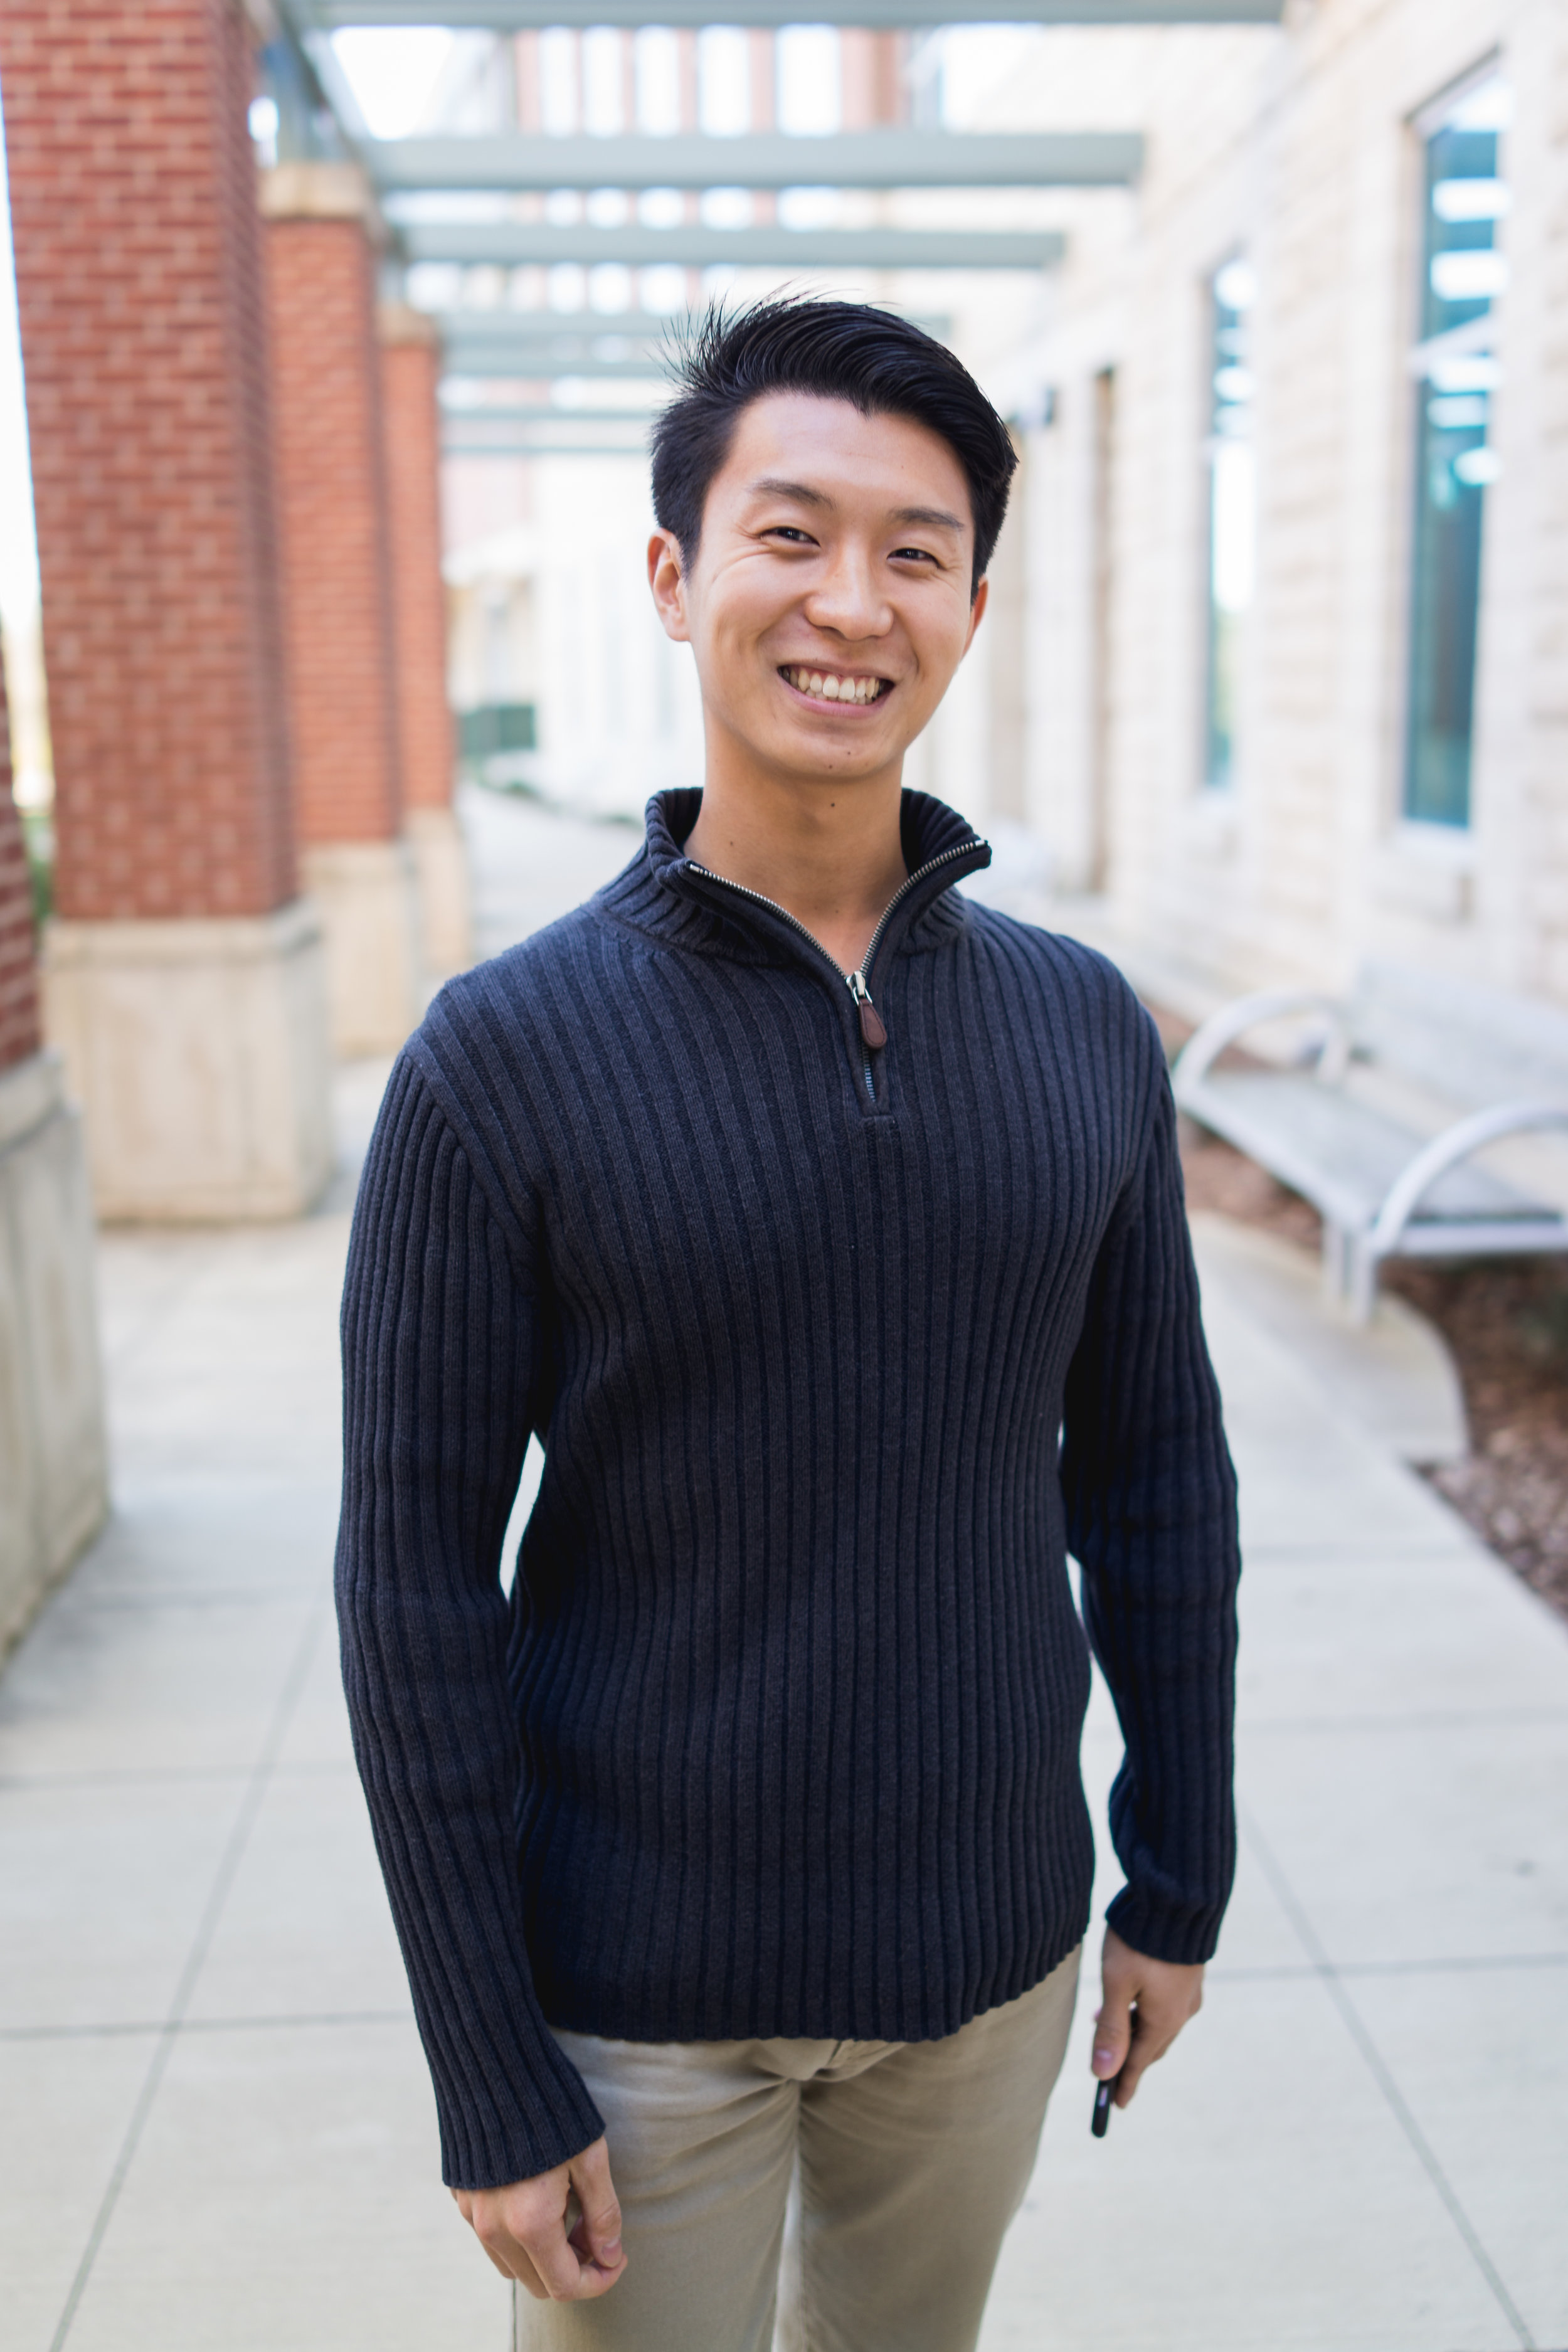 """Andrew Wang,  Social Media Manager                        Normal    0                false    false    false       EN-US    JA    X-NONE                                                                                                                                                                                                                                                                                                                                                                                                                                                                                                                           /* Style Definitions */ table.MsoNormalTable {mso-style-name:""""Table Normal""""; mso-tstyle-rowband-size:0; mso-tstyle-colband-size:0; mso-style-noshow:yes; mso-style-priority:99; mso-style-parent:""""""""; mso-padding-alt:0in 5.4pt 0in 5.4pt; mso-para-margin:0in; mso-para-margin-bottom:.0001pt; mso-pagination:widow-orphan; font-size:12.0pt; font-family:Cambria; mso-ascii-font-family:Cambria; mso-ascii-theme-font:minor-latin; mso-hansi-font-family:Cambria; mso-hansi-theme-font:minor-latin;}         I studied biochemistry in undergrad, but I think it was my minor in sociology that really shapes who I am. Growing up in a household of two different - and sometimes clashing - cultures, I love to learn how the backgrounds of other groups of people mold individuals in how they interact with one another. Each of us came from a unique walk of life with our own stories to tell, and that's what I believe the Synapse provides: a place for us to express our ideas and experiences - things that make us who we are."""